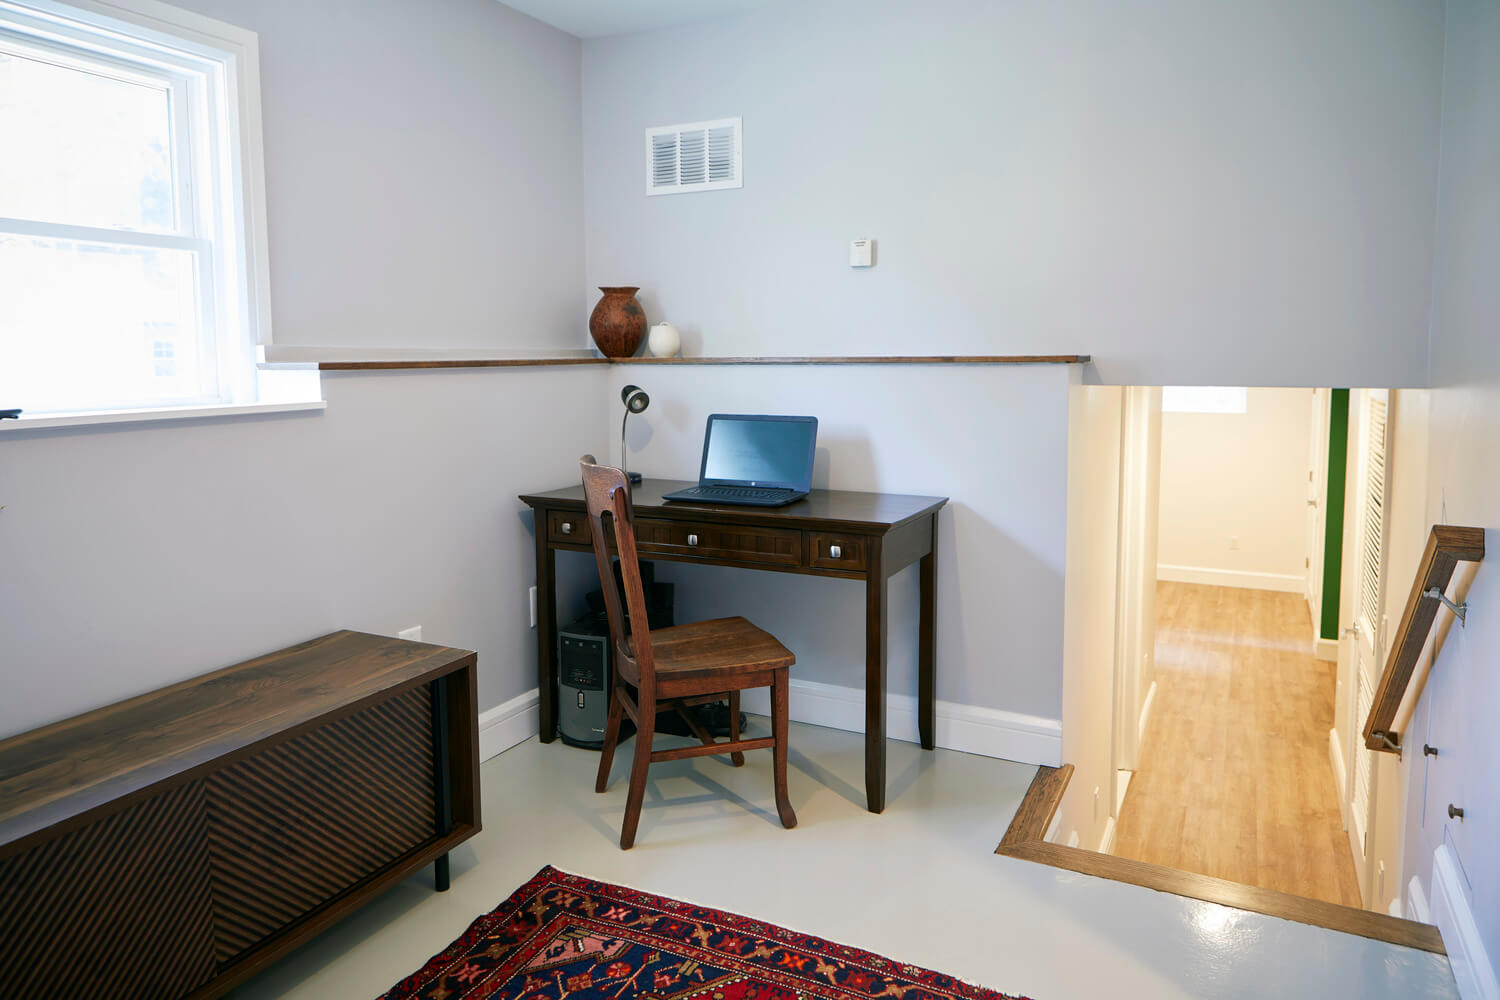 houseplay-renovations-ridgefield-nj-reactivate-your-space-09